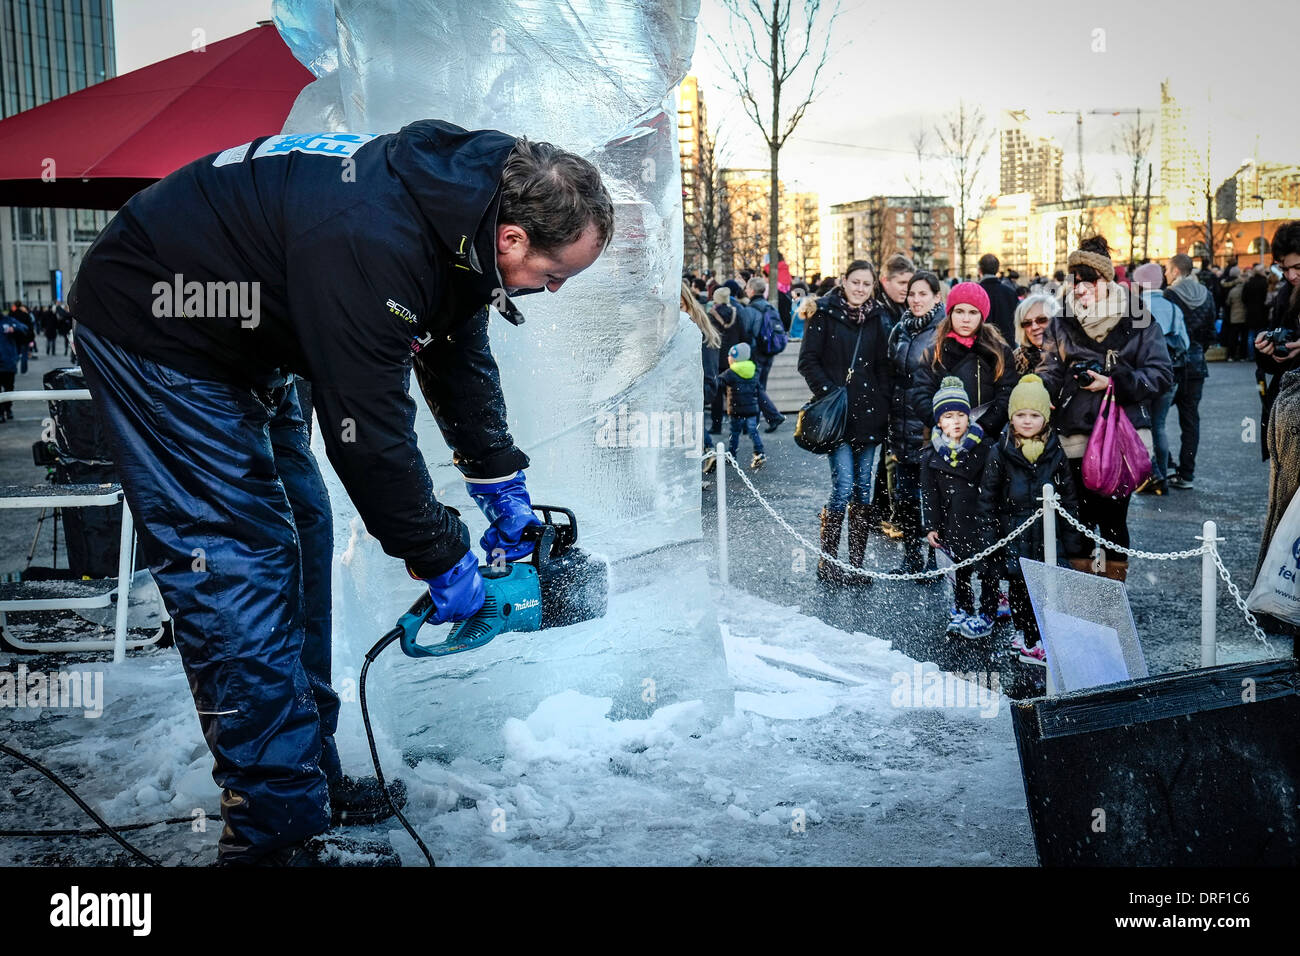 An artist working to create a sculpture as part of the London Ice Sculpture Festival 2014. - Stock Image